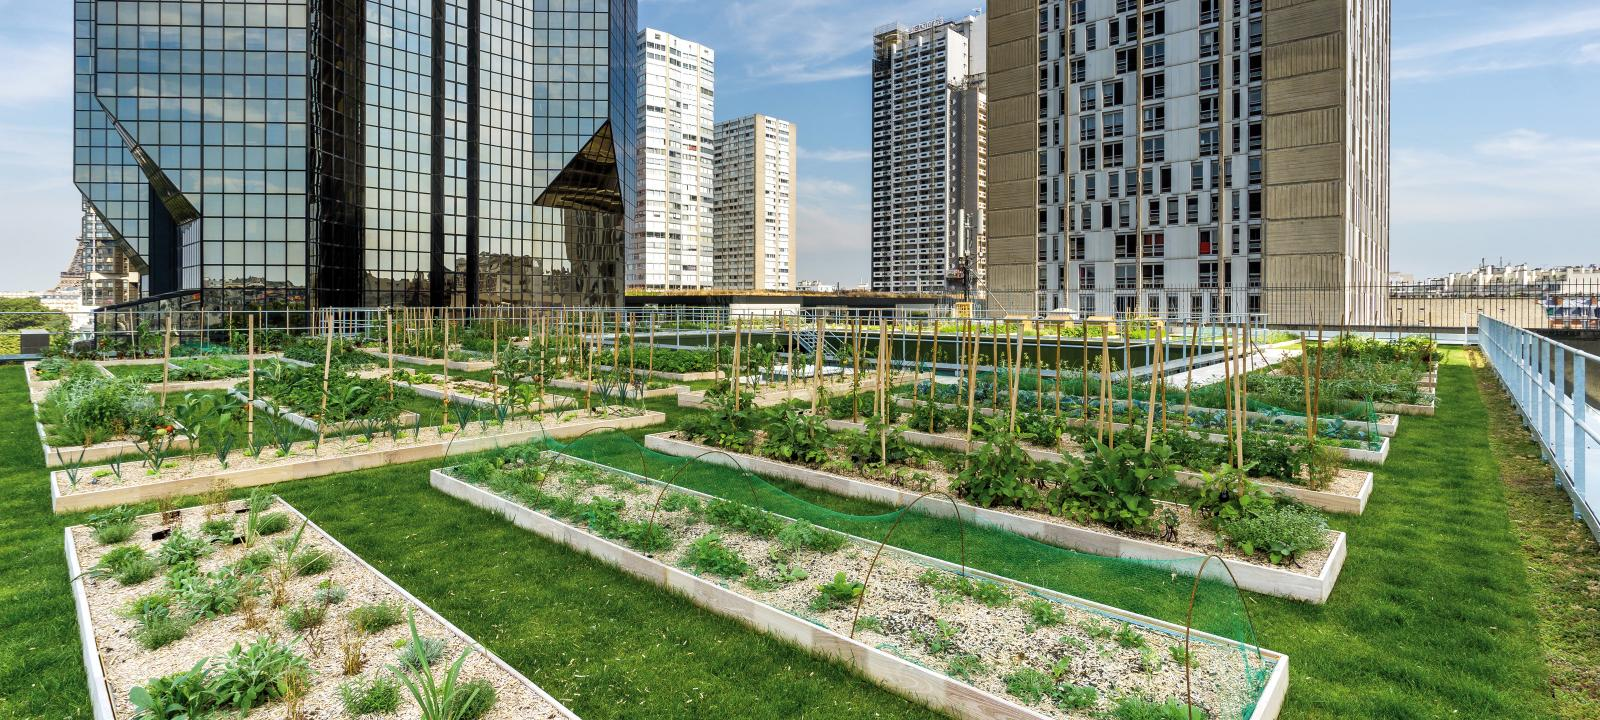 Urban Rooftop Farming Zinco Green Roof Systems